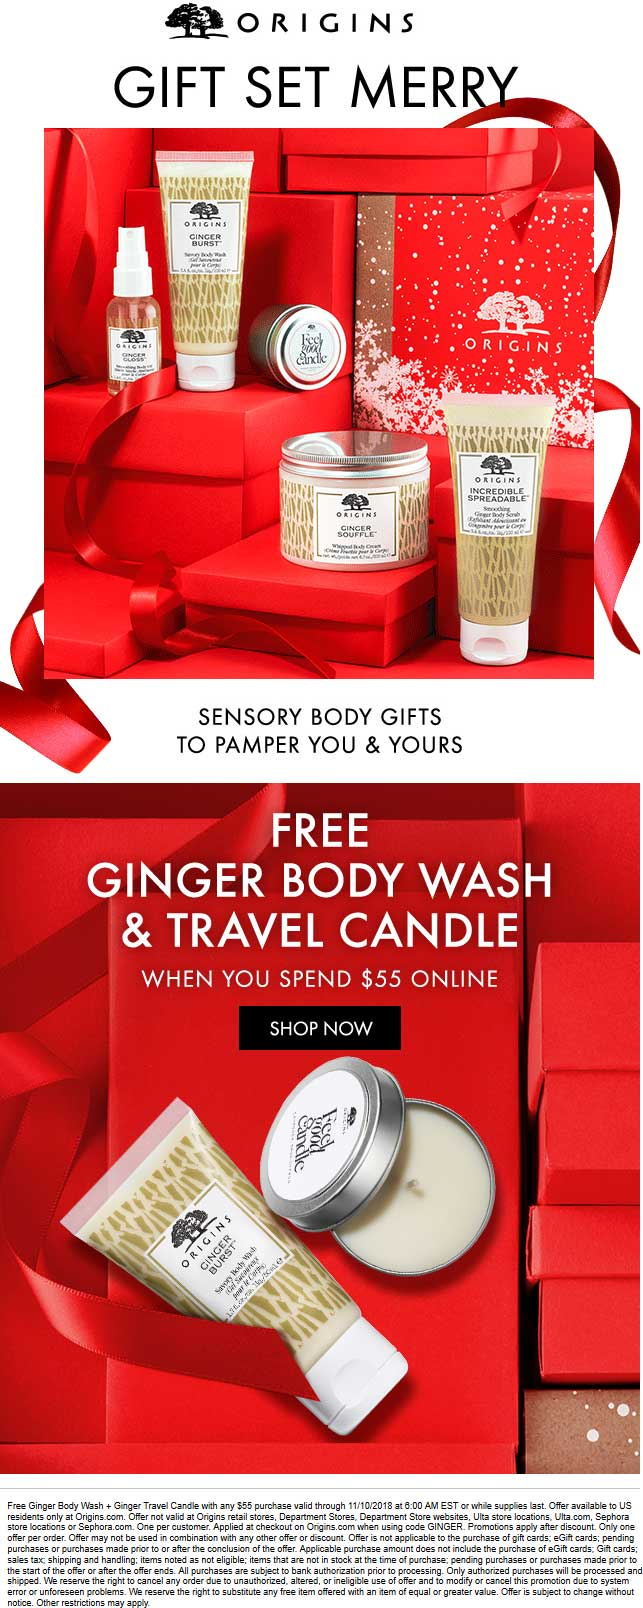 Origins Coupon July 2019 Free Ginger body wash + candle with $55 spent online at Origins via promo code GINGER